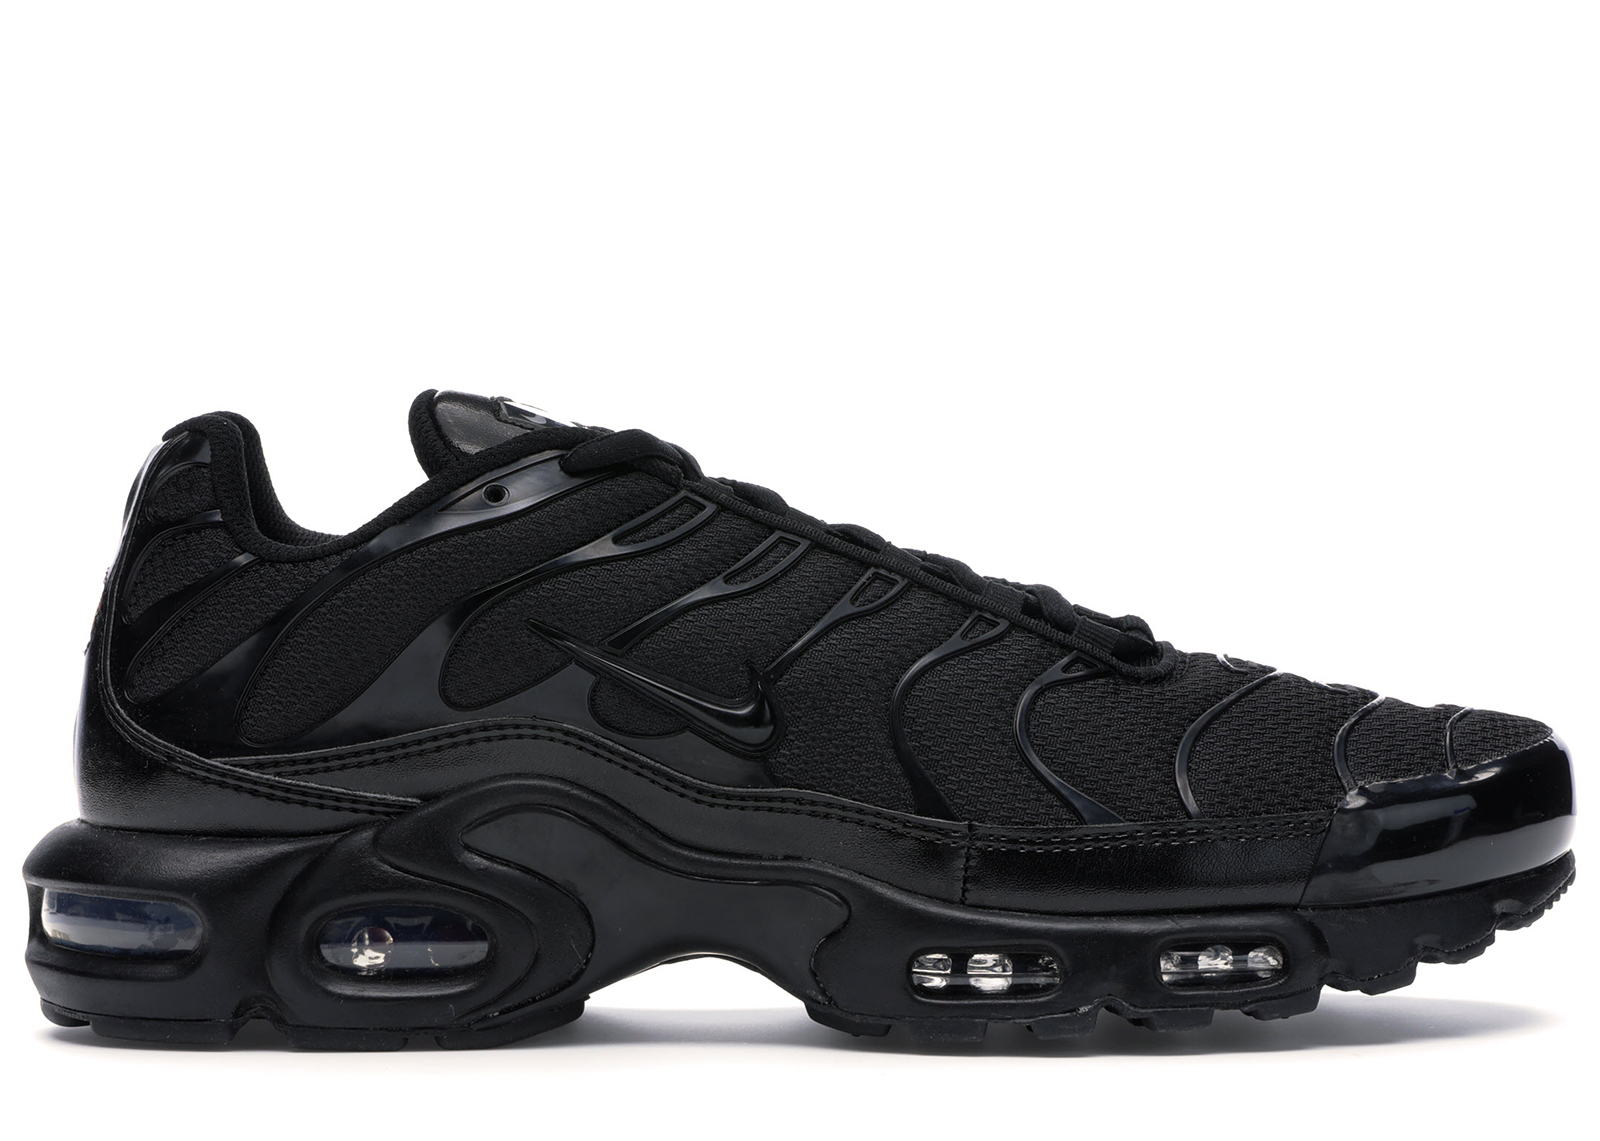 Nike Air Max Plus Triple Black